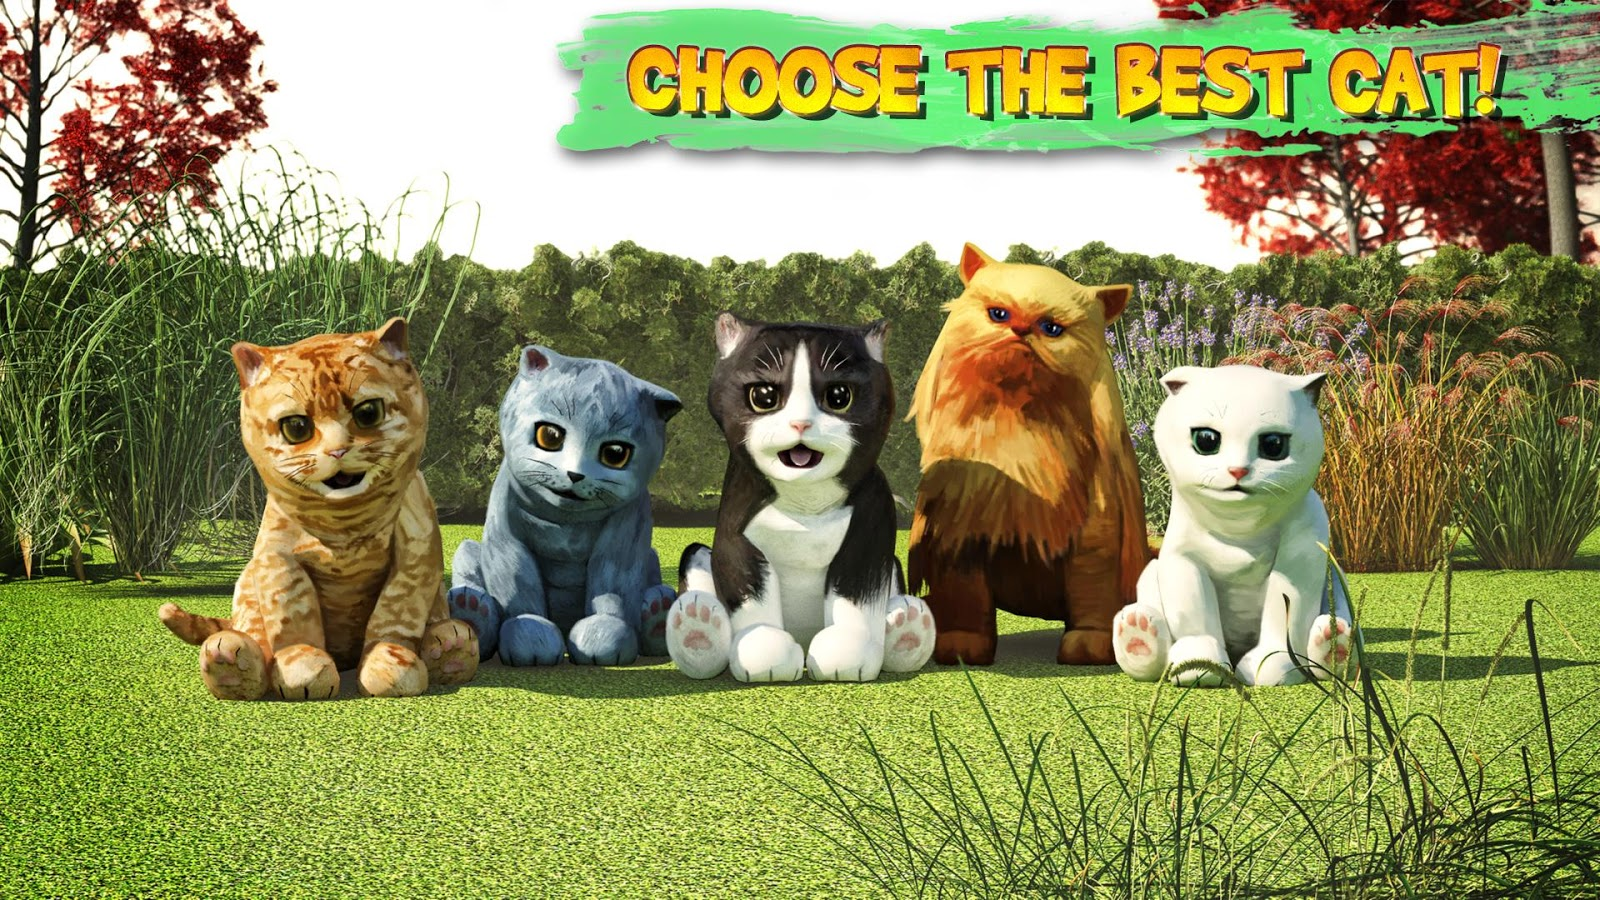 Farm Game On Android With Cats